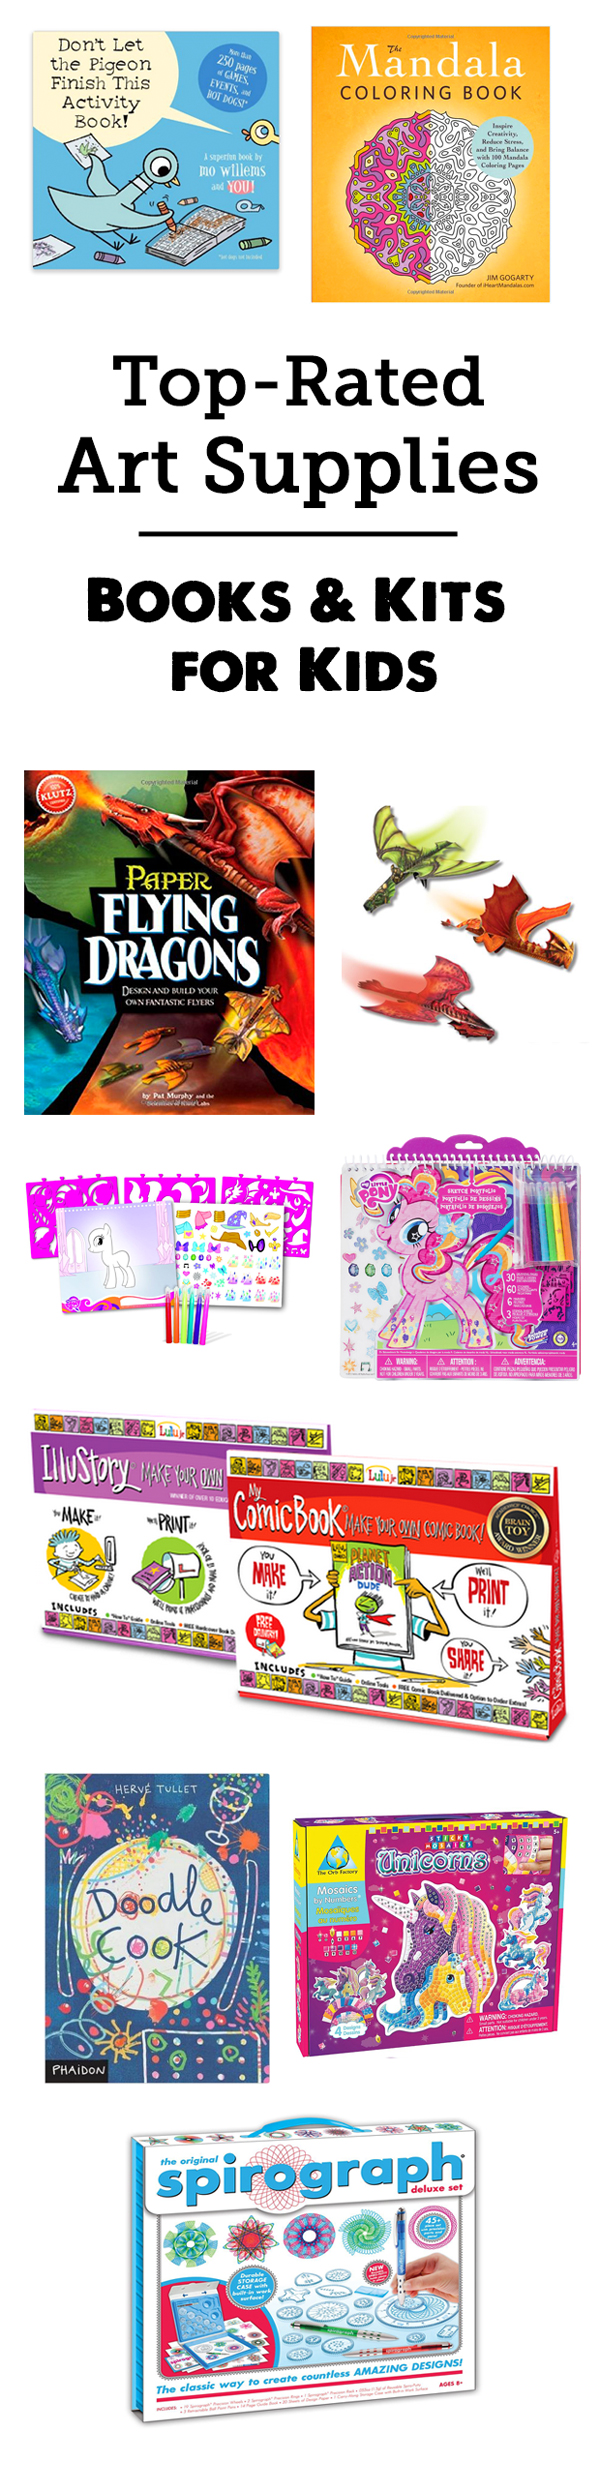 MPMK Toy Gift Guide: Best Art Supplies, Art Books and Art Kits for Kids - So many cool and interesting picks here, love the age recommendations and detailed reviews.